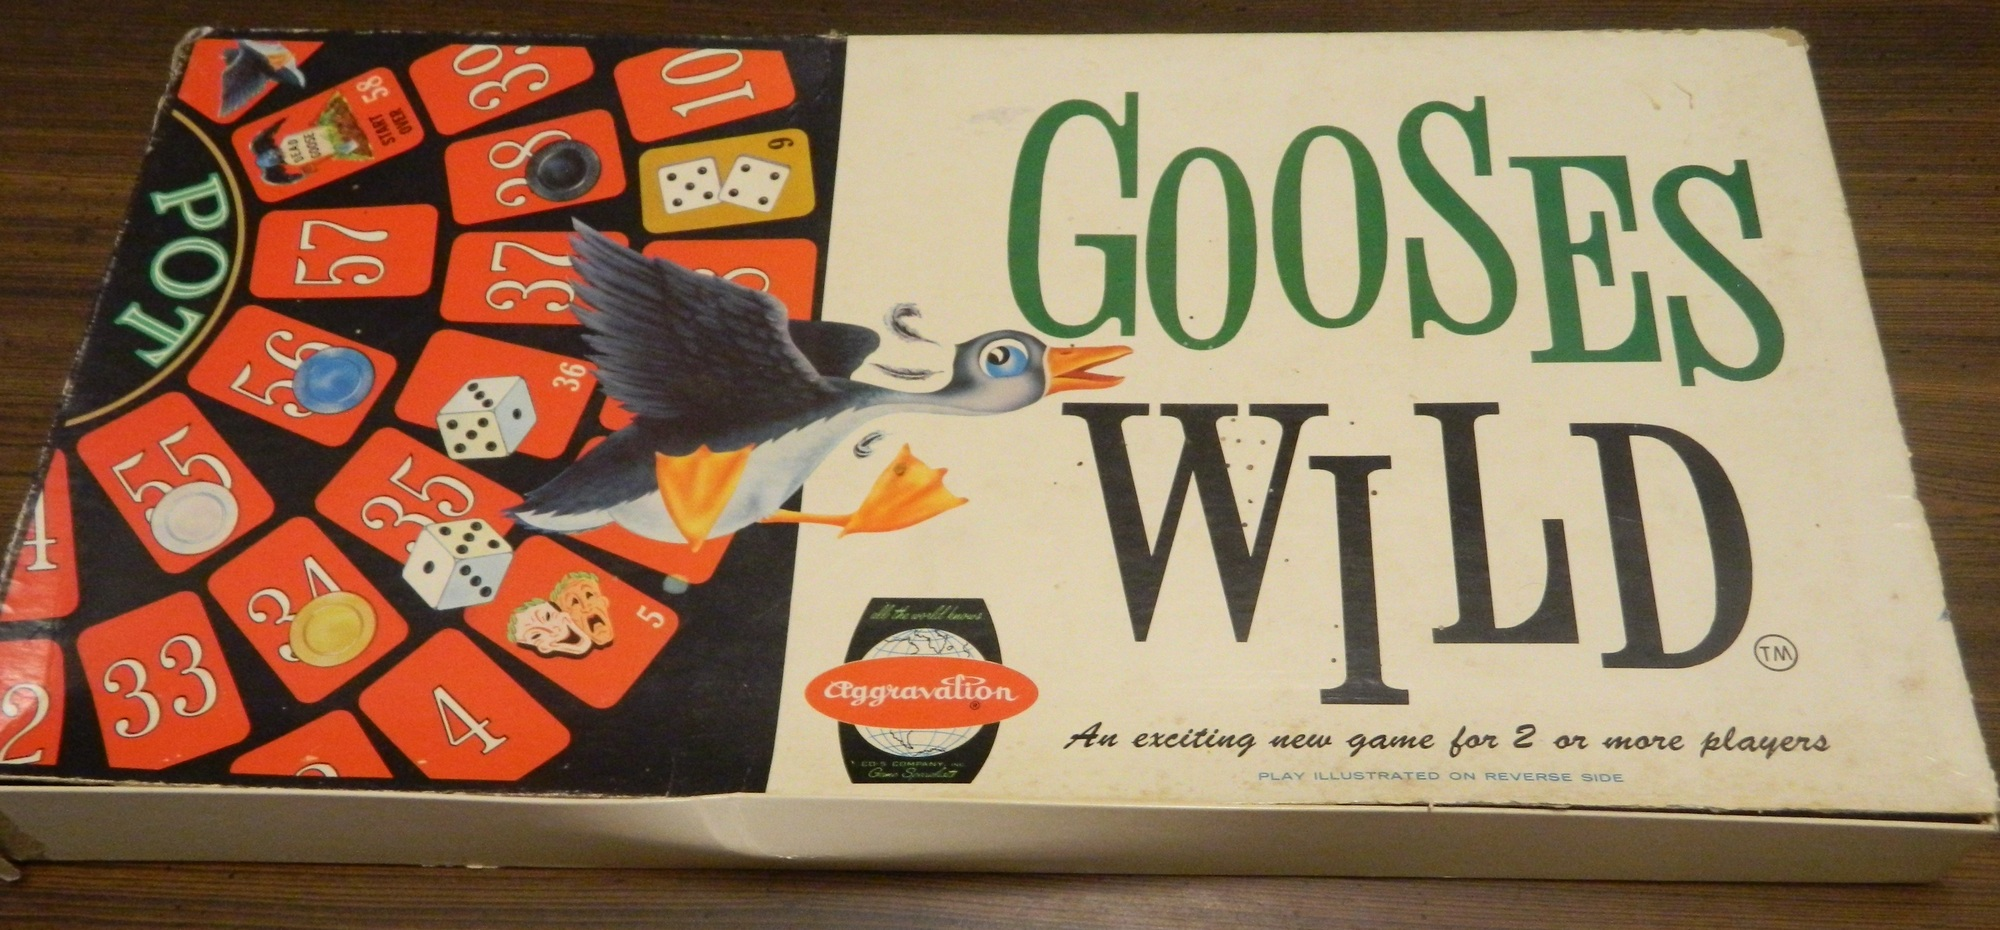 Box for Gooses Wild